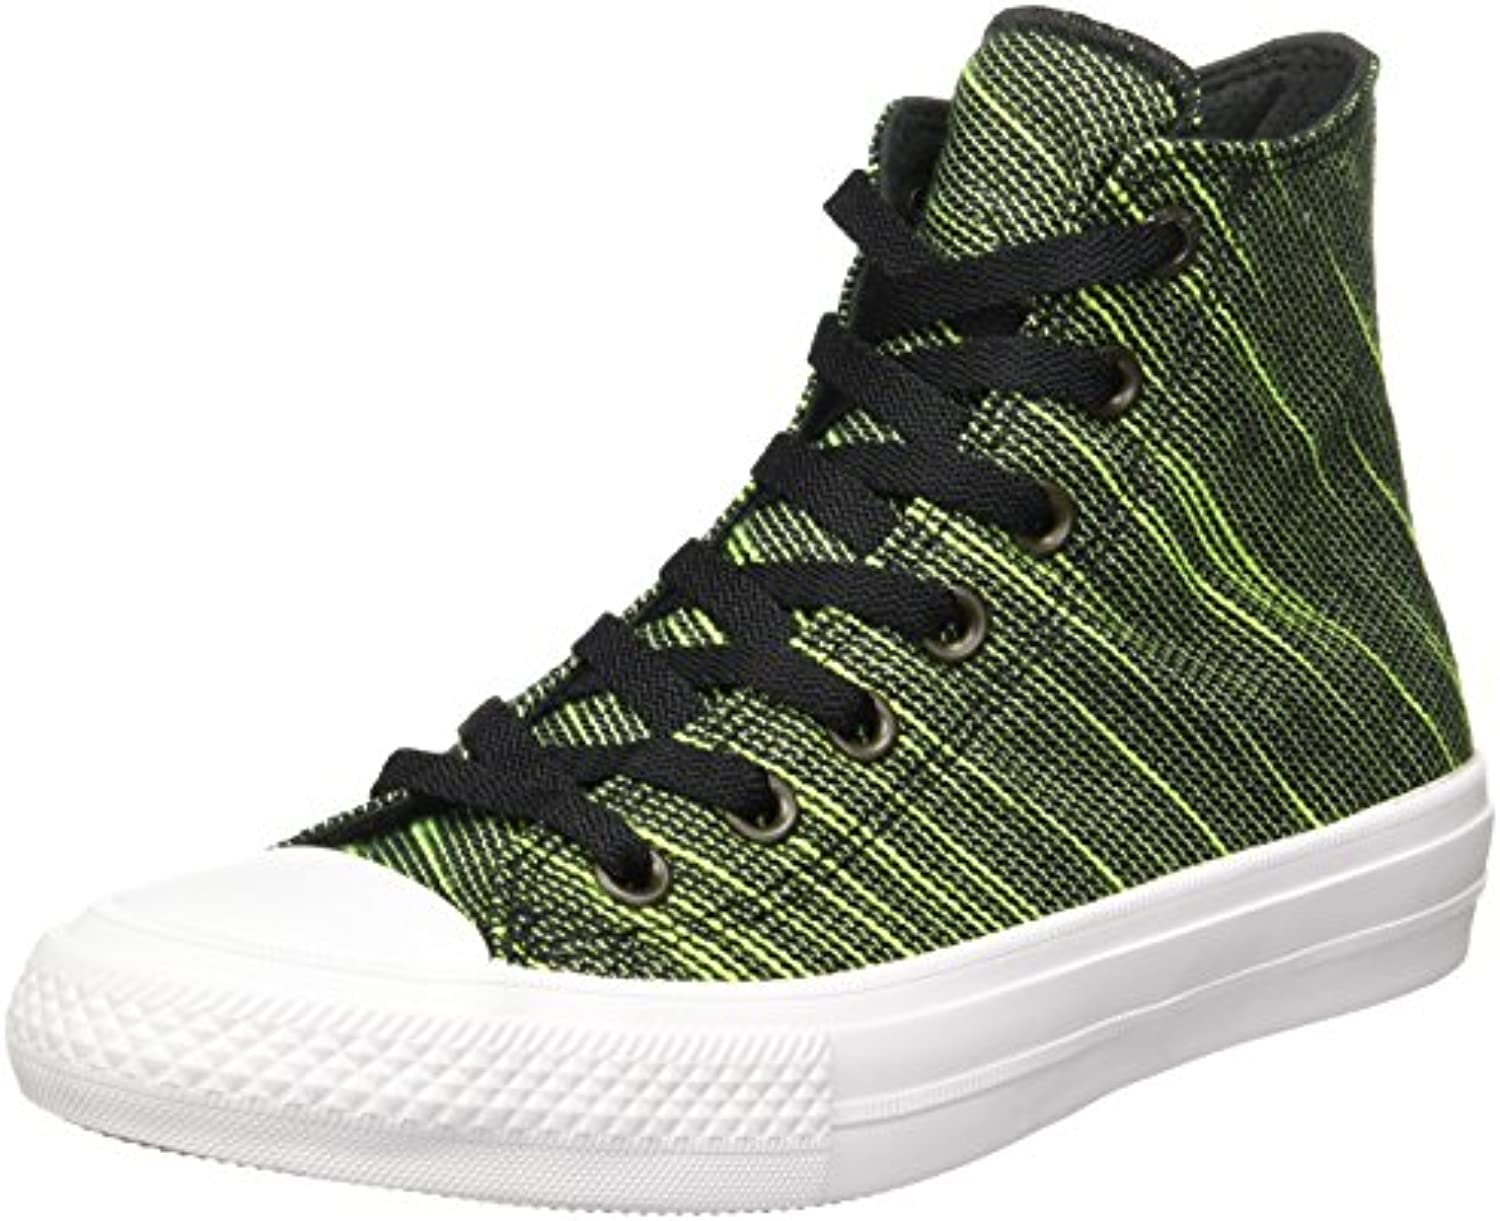 Converse Unisex Erwachsene Sneakers Chuck Taylor All Star Ii C151086 High Top